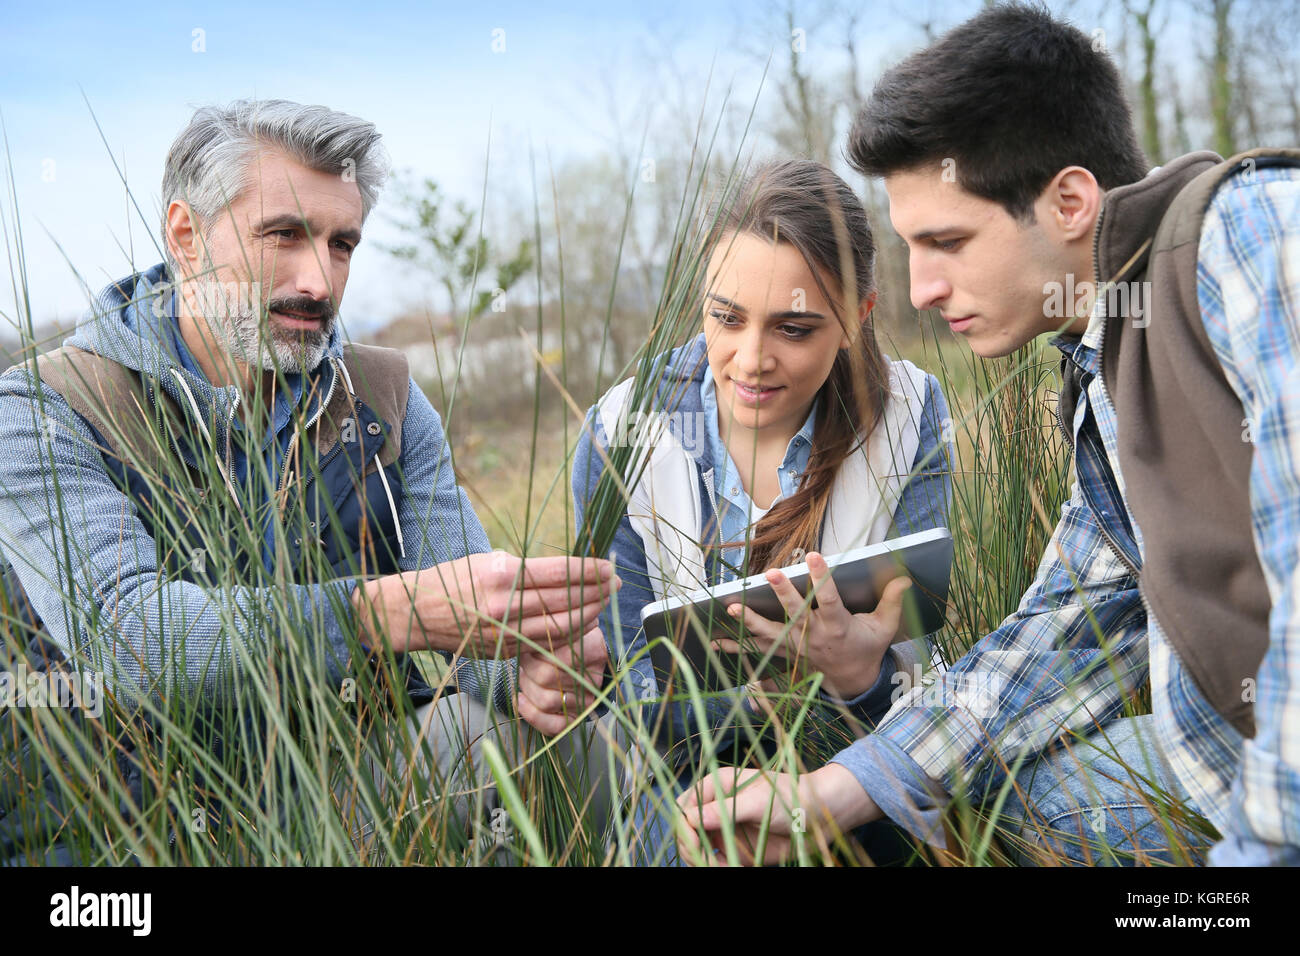 Teacher with students in agronomy looking at vegetation - Stock Image